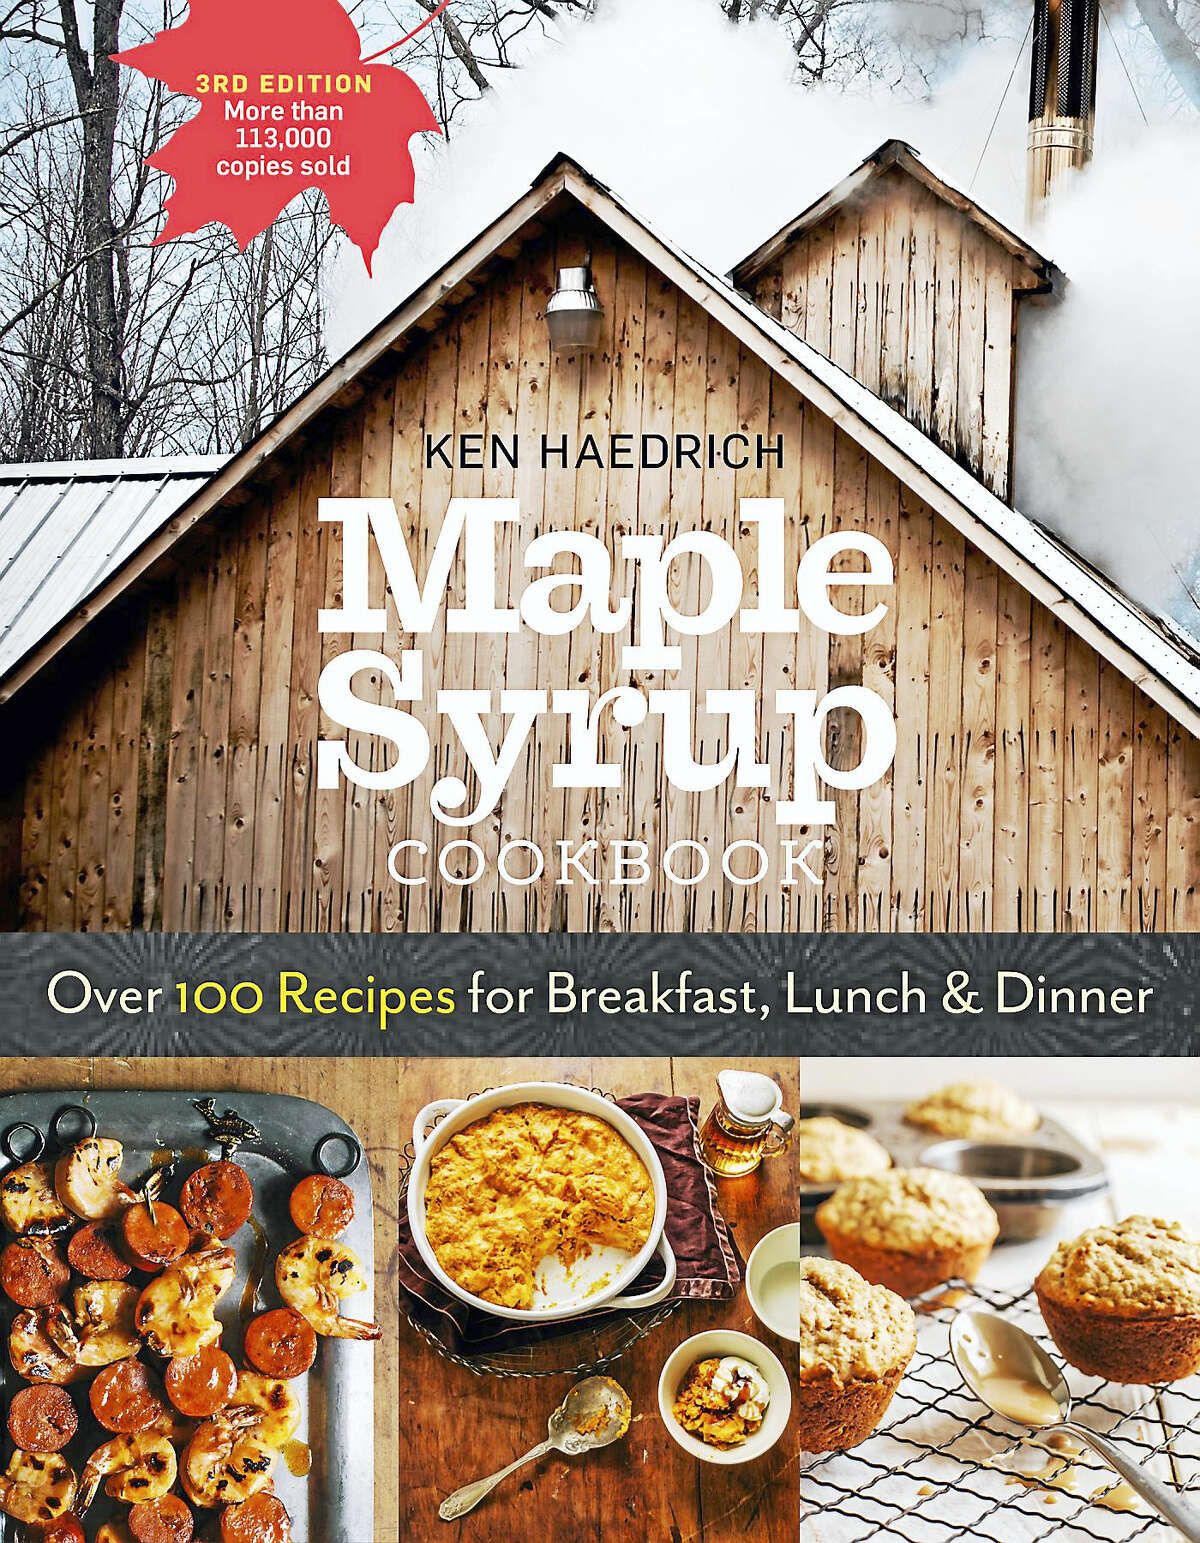 Ken Haedrich's Maple Syrup Cookbook has over 100 recipes for breakfast, lunch and dinner.